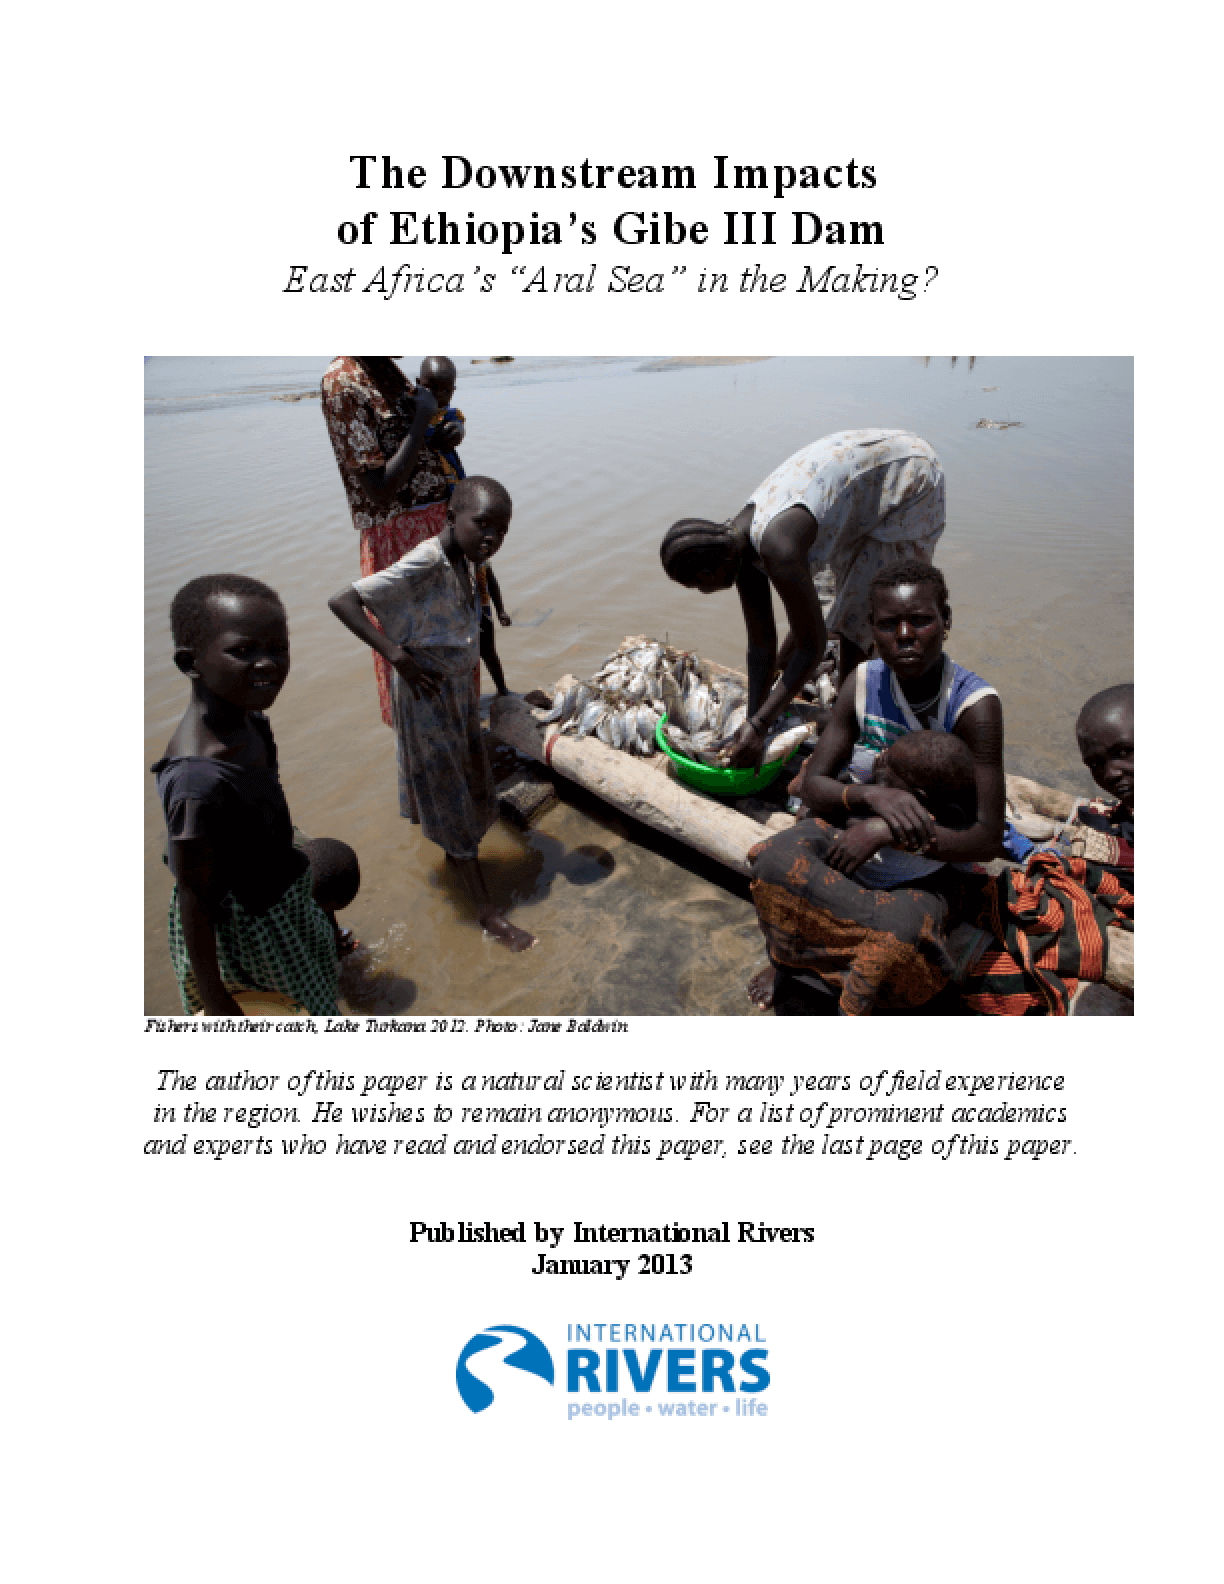 The Downstream Impacts of Ethiopia's Gibe III Dam